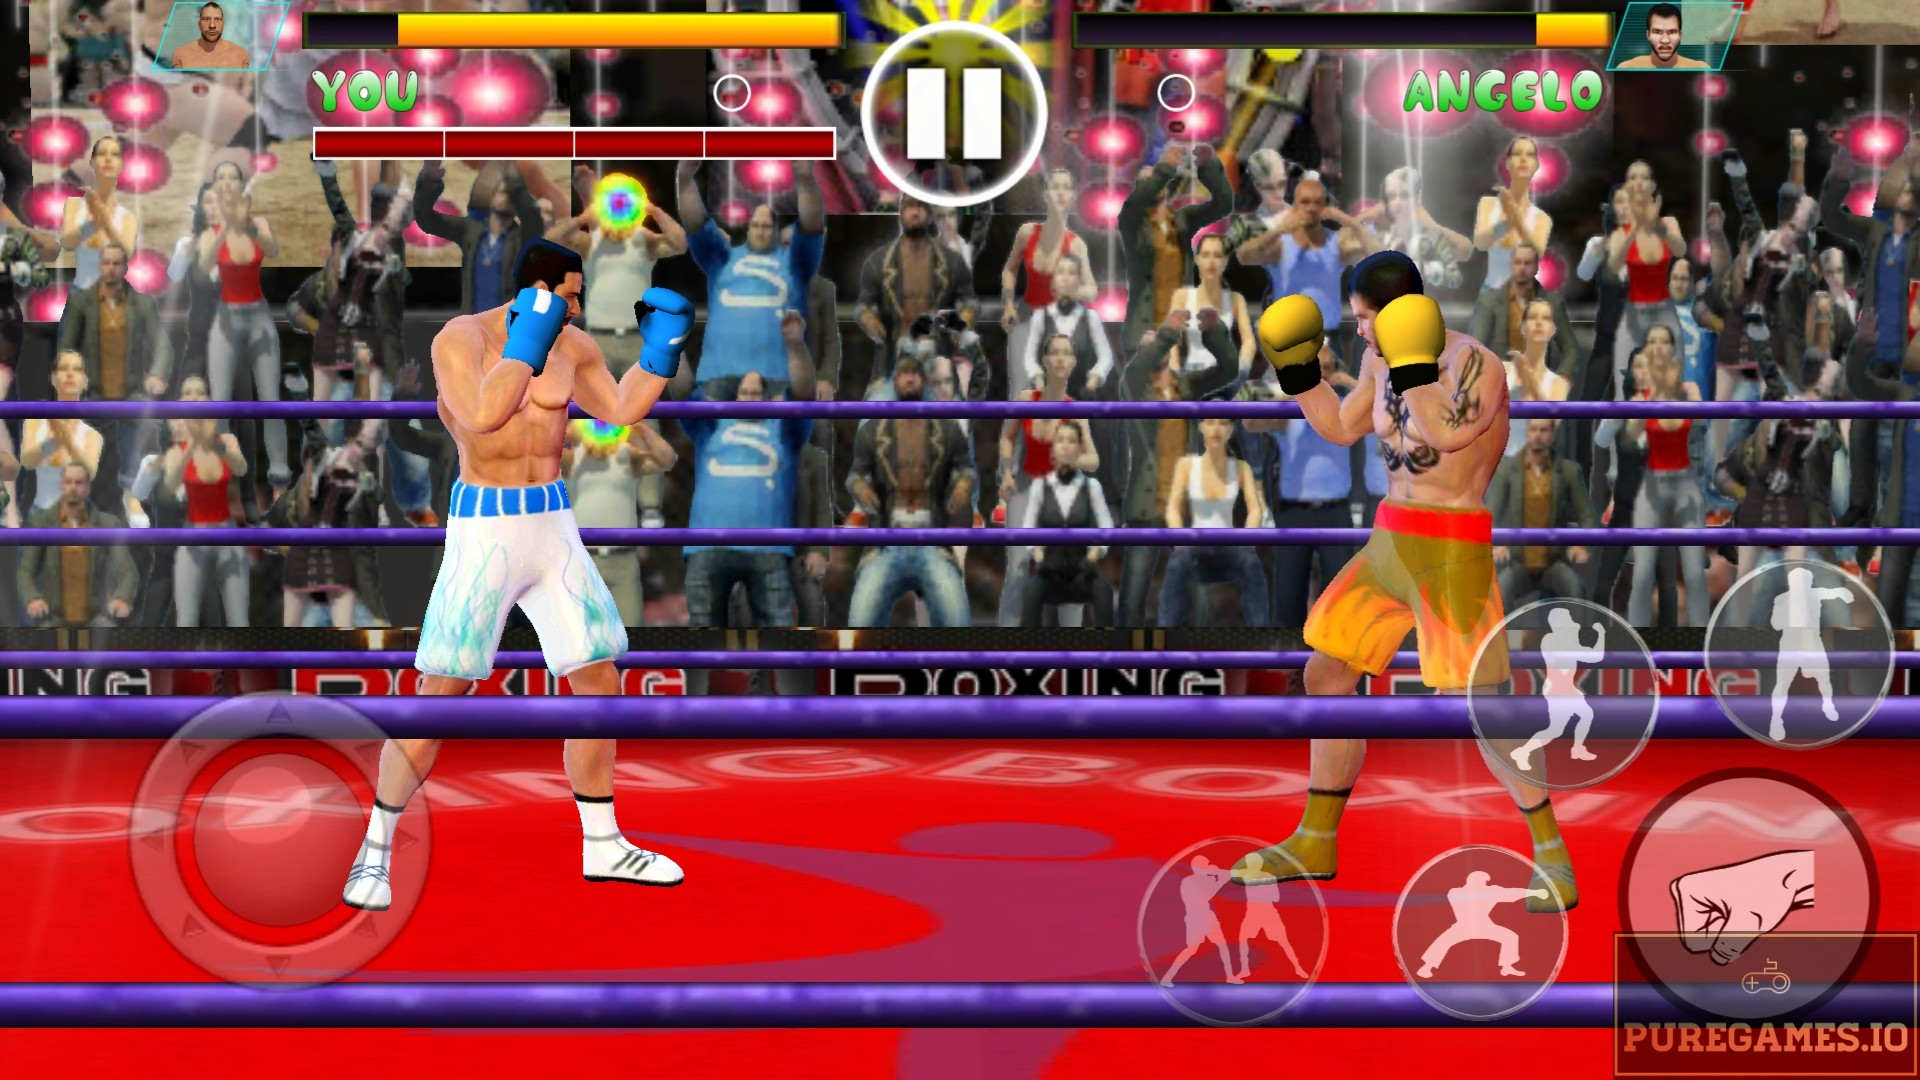 Download Ninja Punch Boxing Warrior: Kung Fu Karate Fighter APK - For Android 7